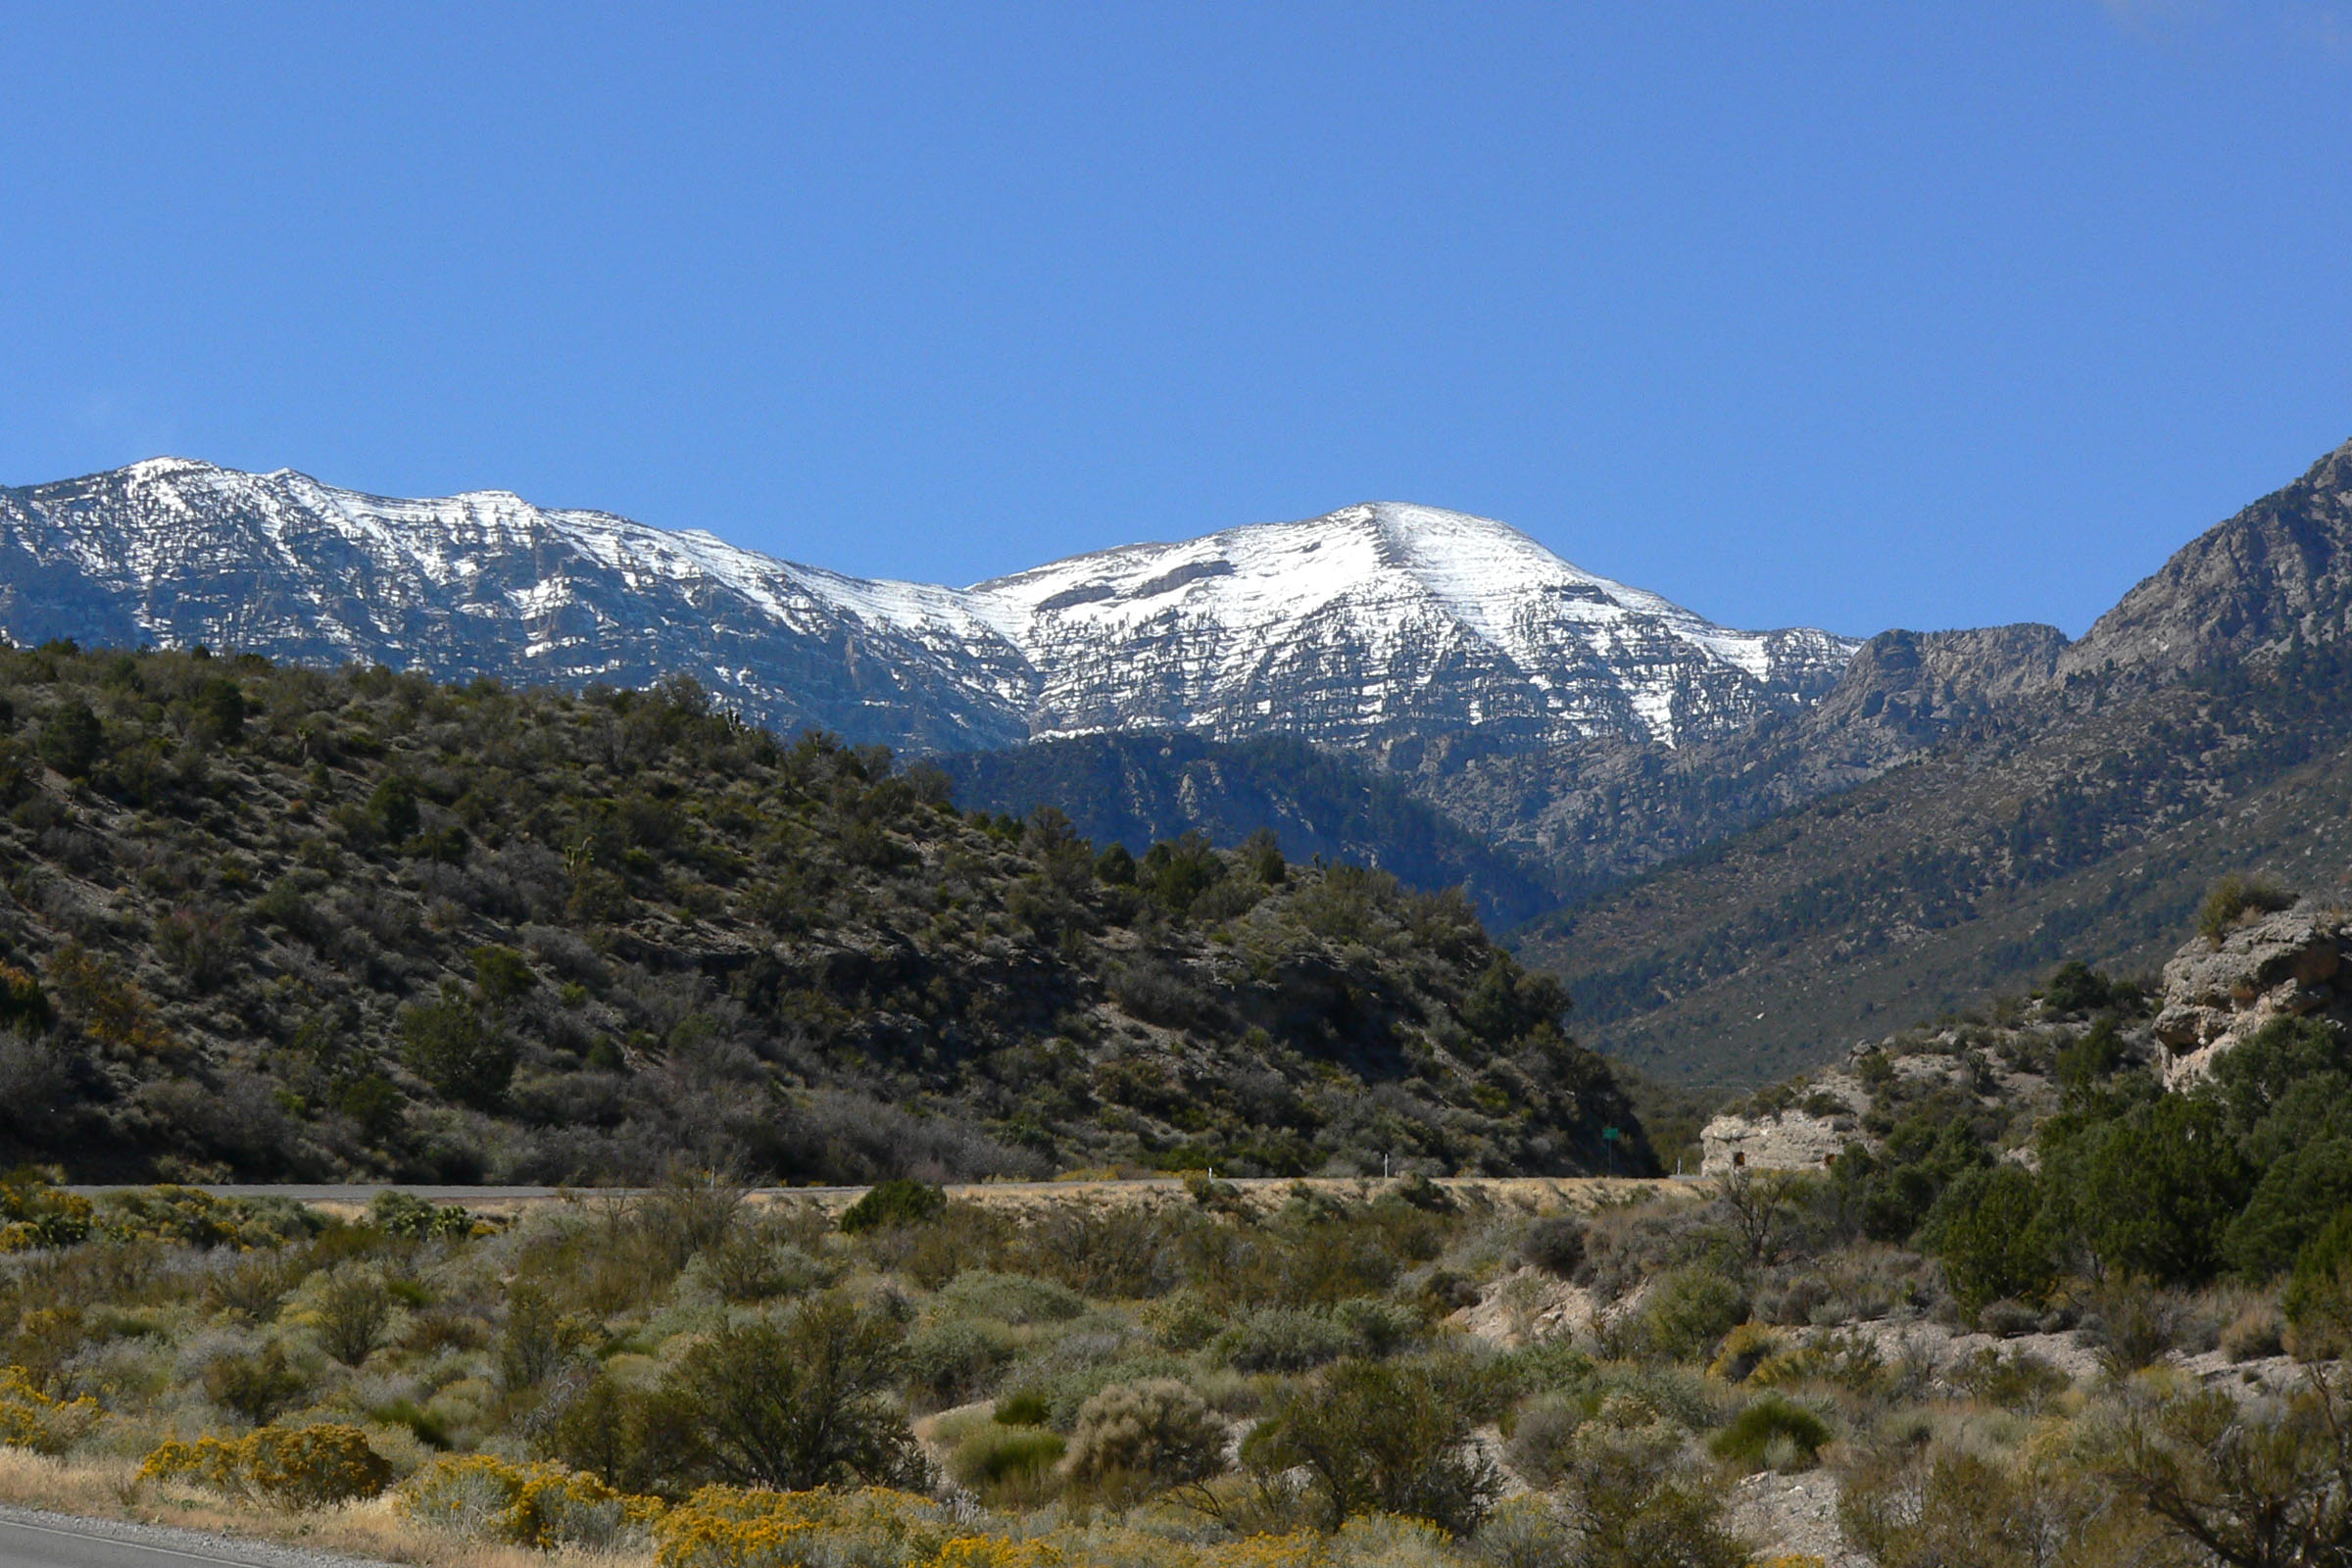 Mount Charleston is a great contrast for those who want to get away from the desert scene for a day.